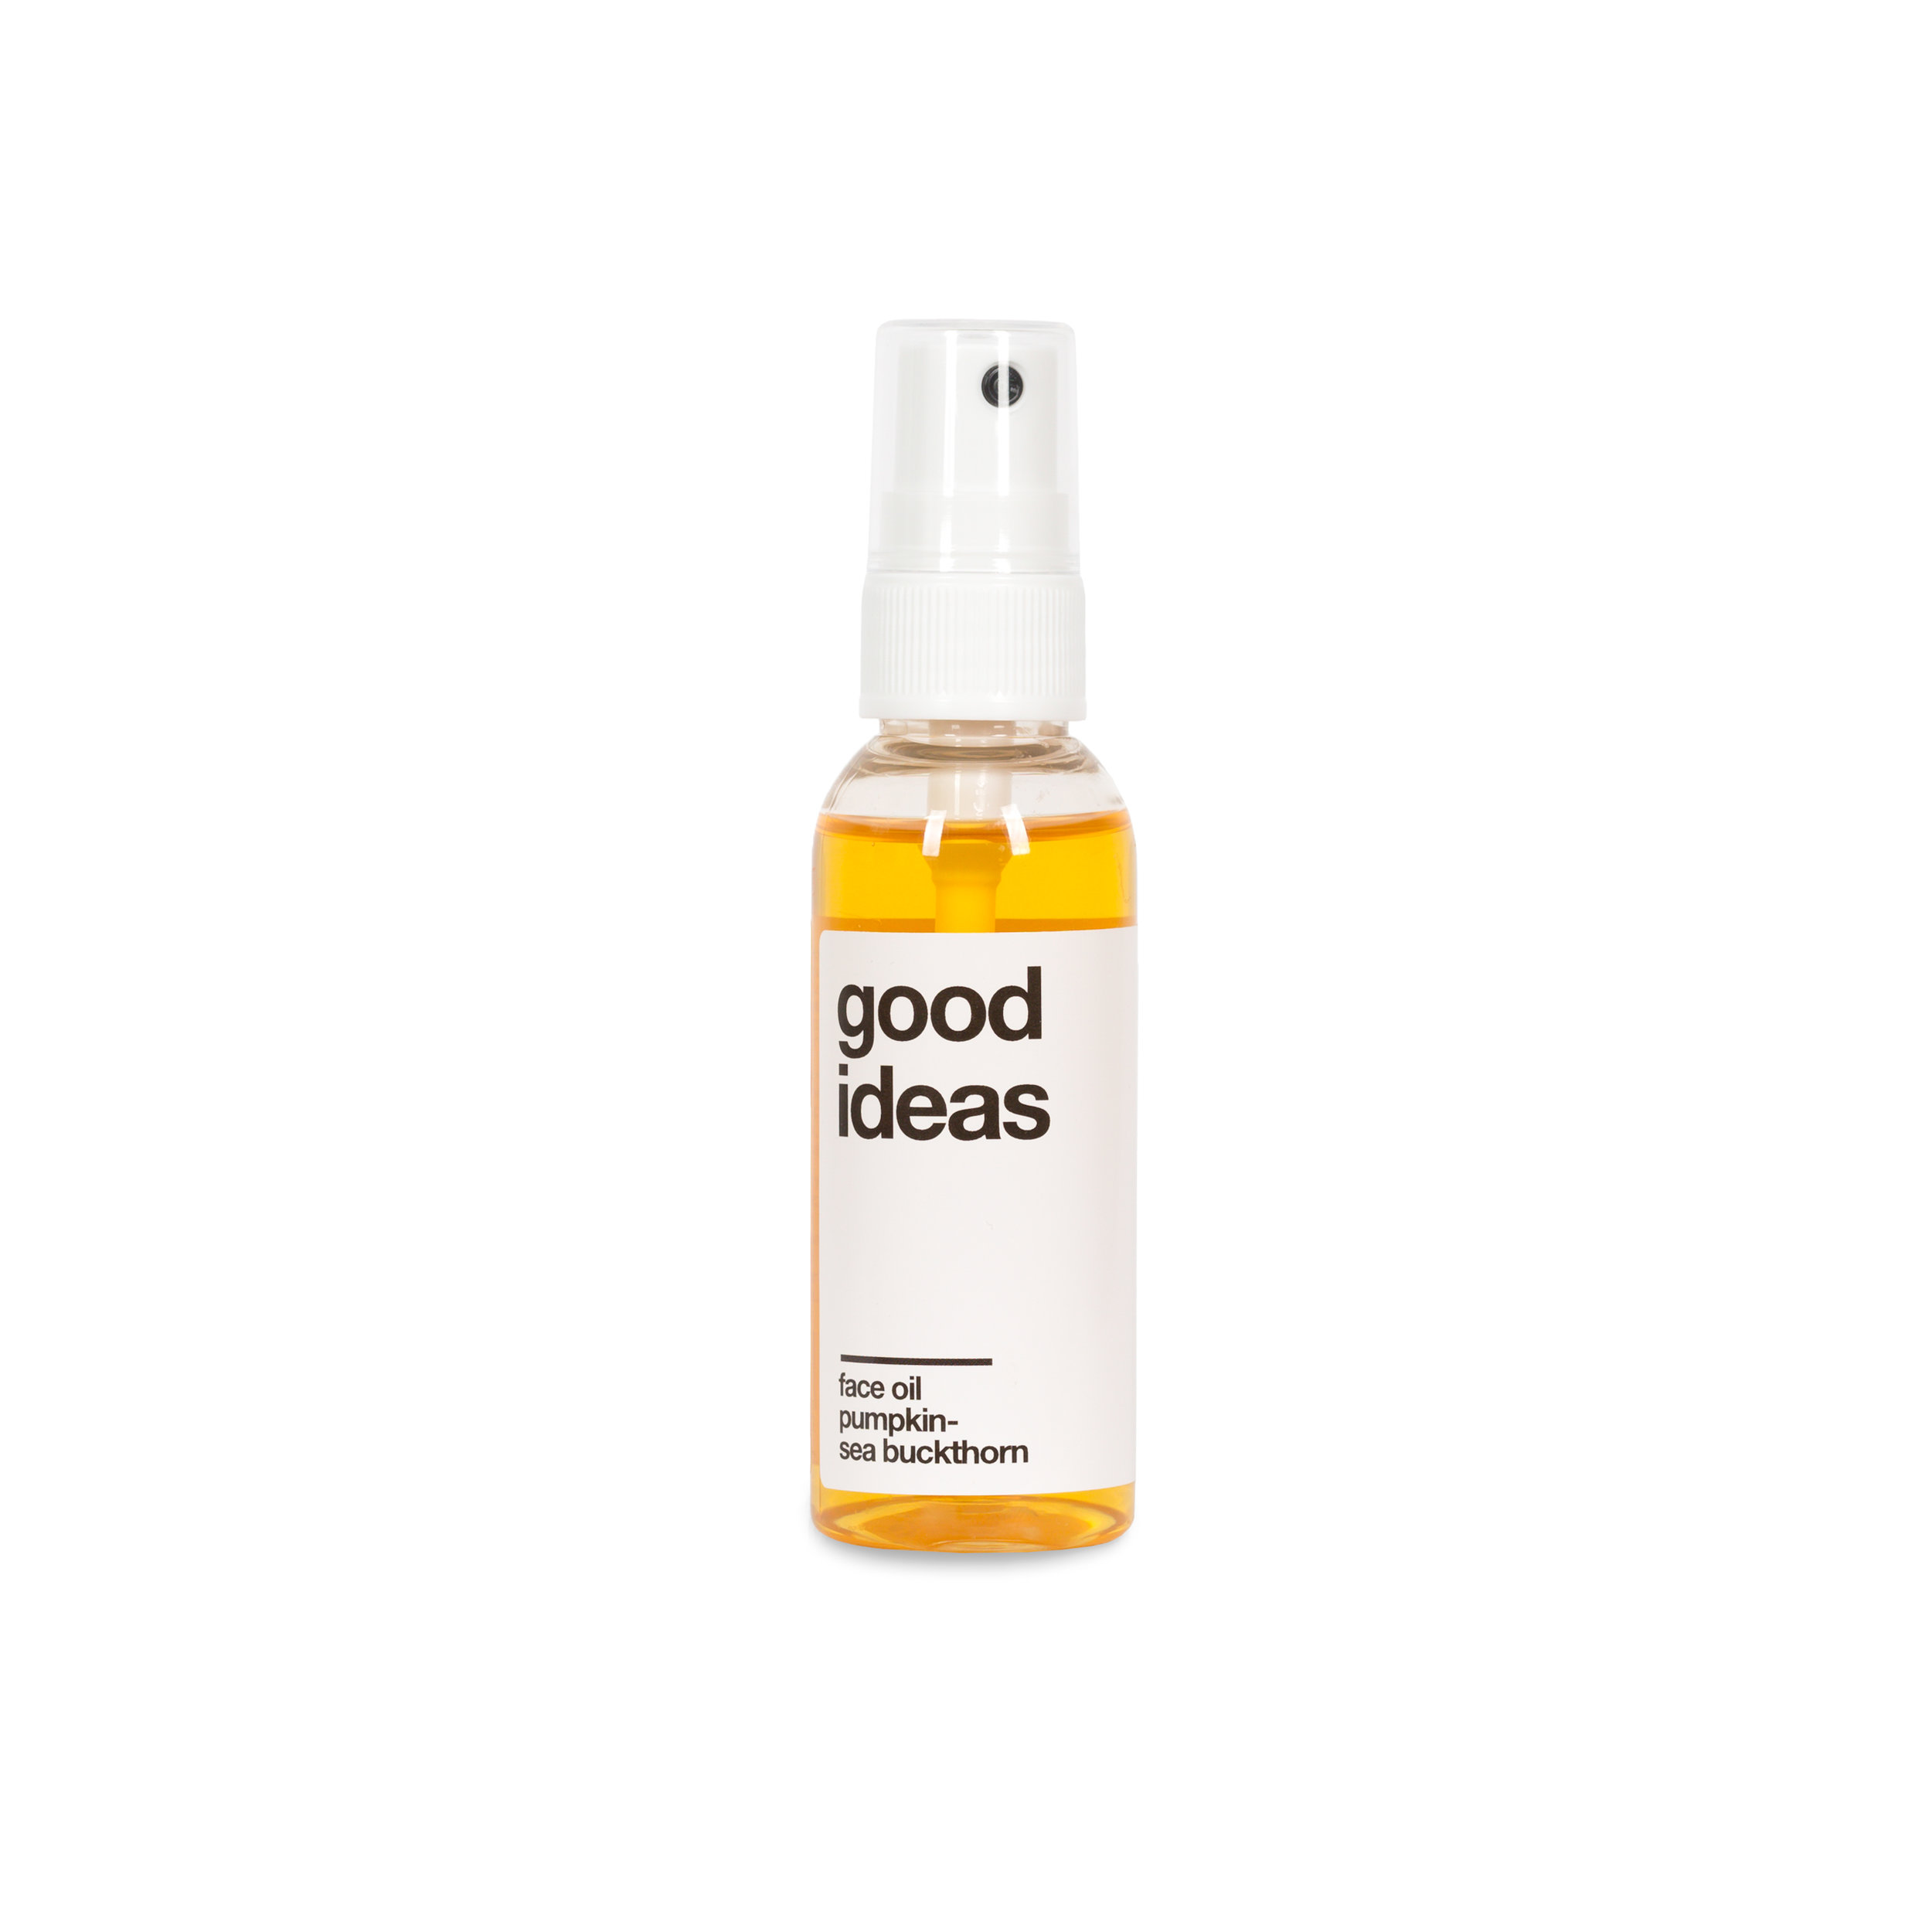 'Good Ideas'  Face Oil with Pumpkin and Sea Buckthorn by Moshi